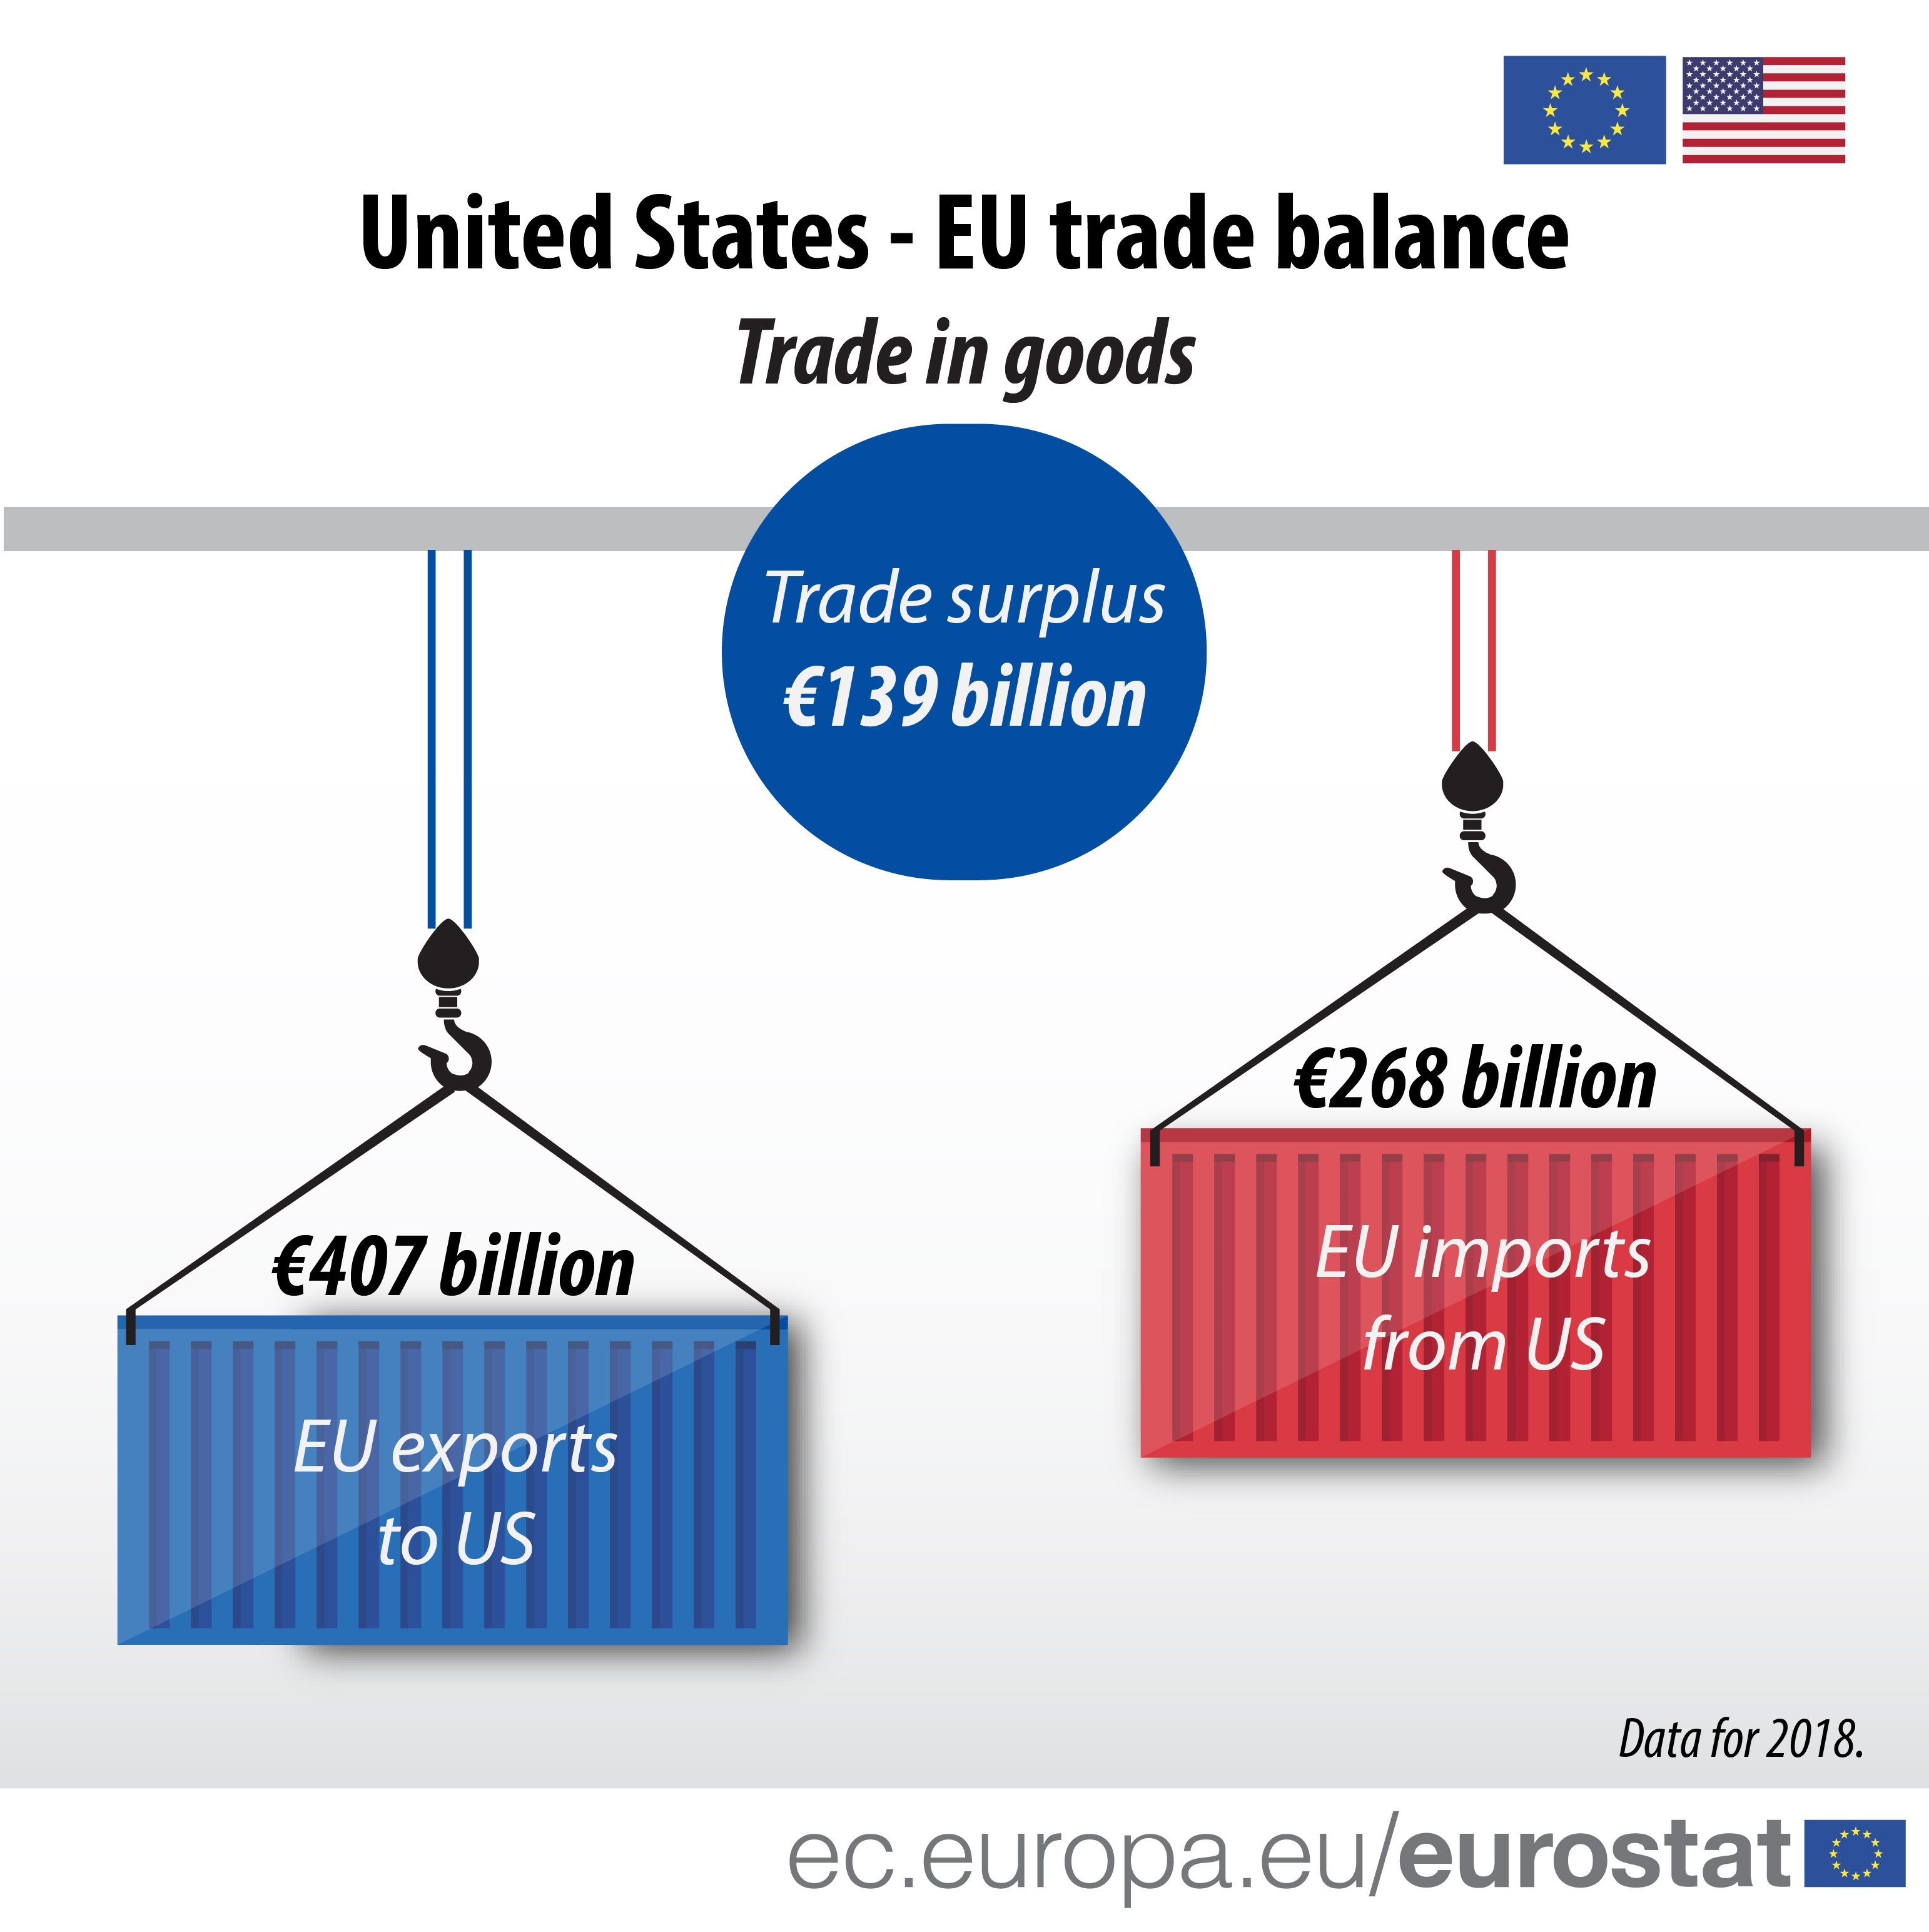 Infographic of US-EU trade, imports, exports and trade balance, 2018